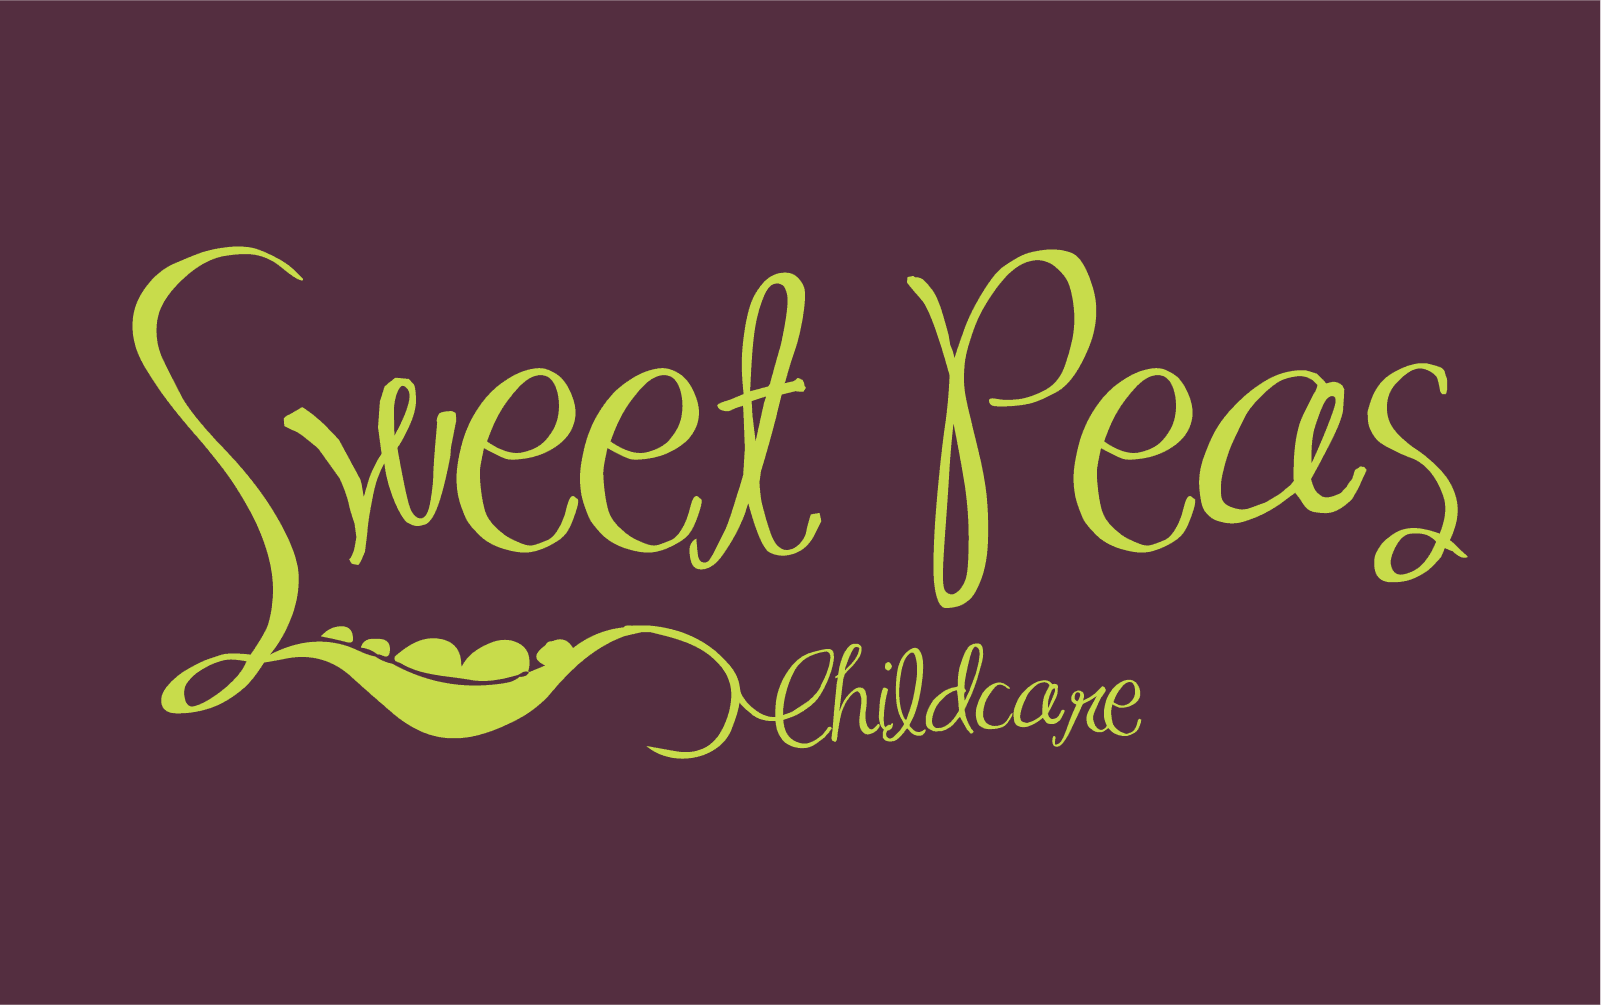 Sweet Peas Childcare